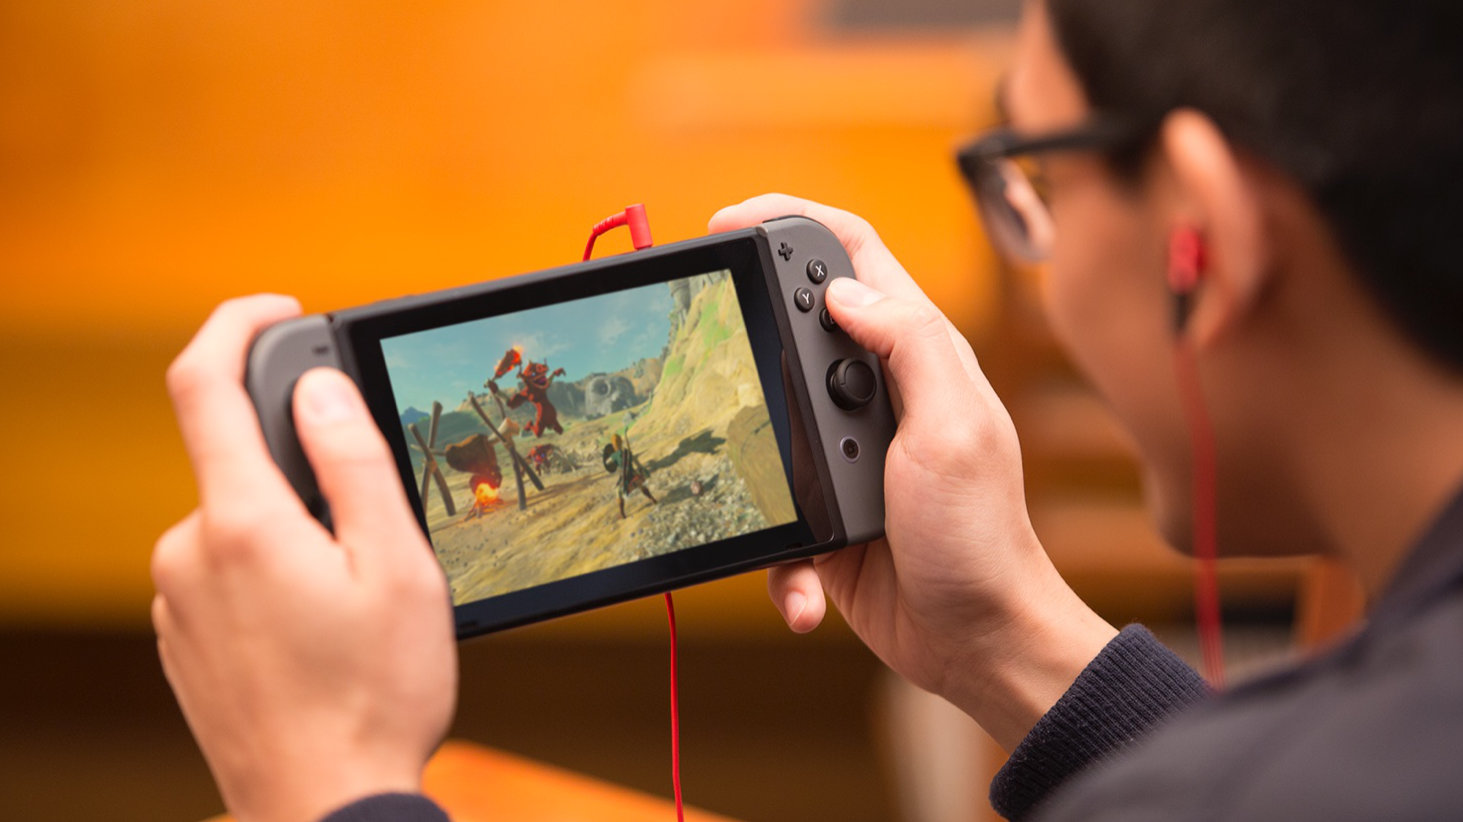 Nintendo Switch's online service confirmed for late